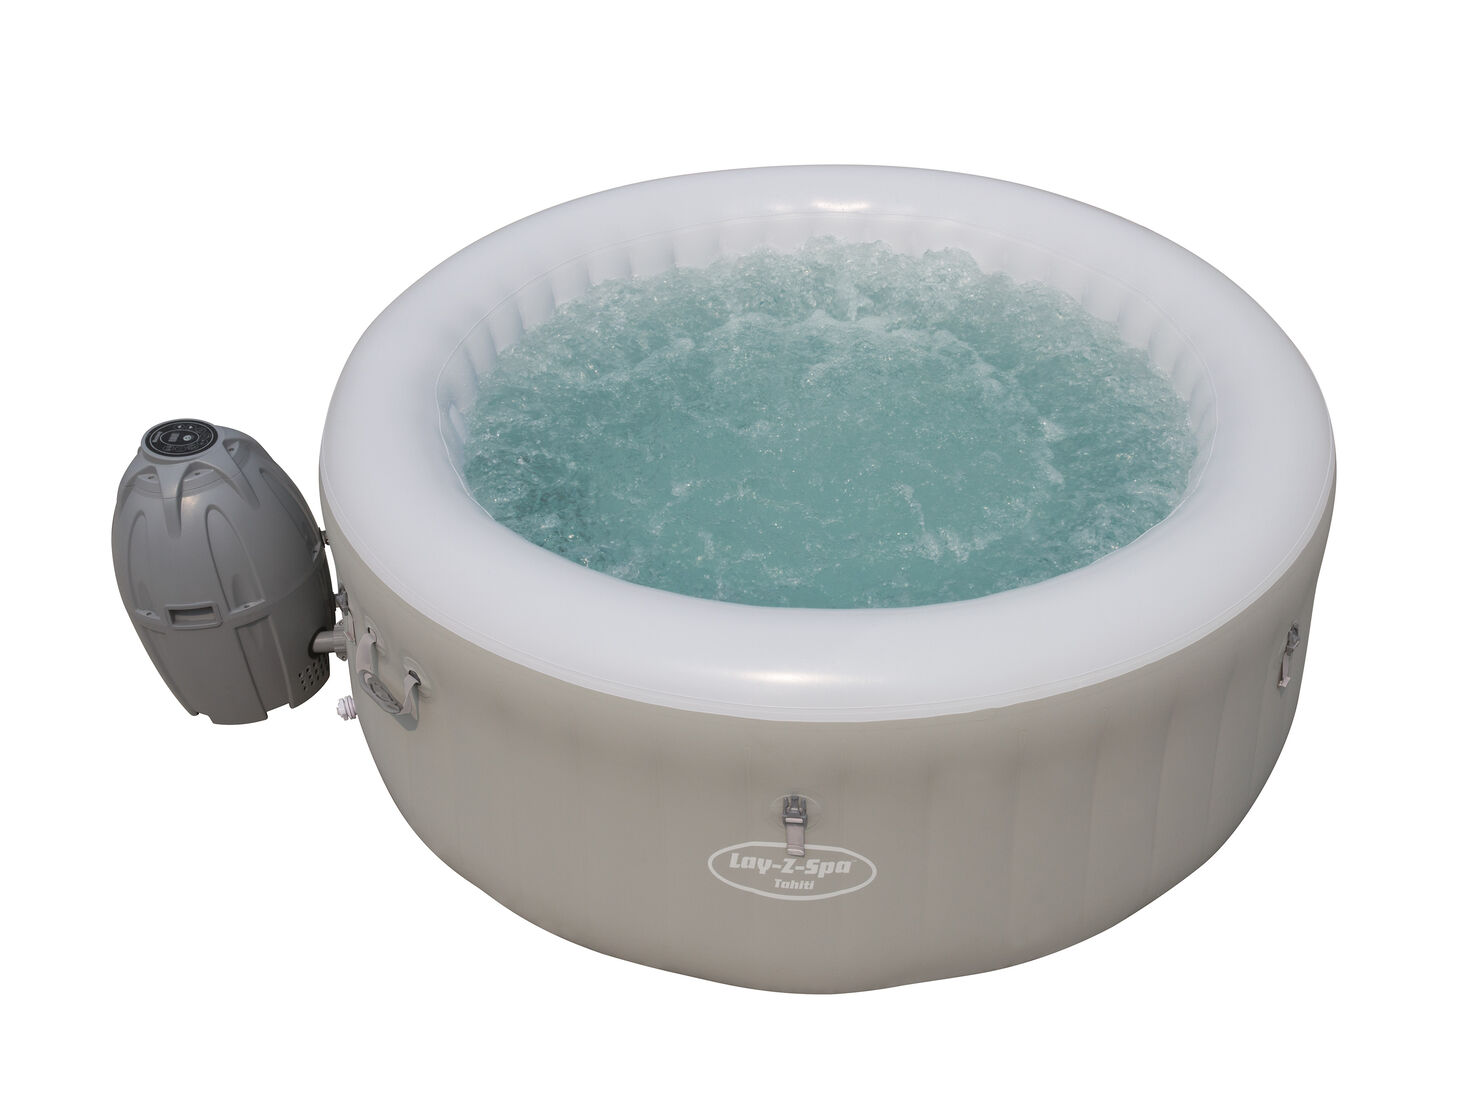 Jacuzzi Inflable Para 2 Personas.Spa Inflable Tahiti Airjet Lay Z Bestway 2 A 4 Personas